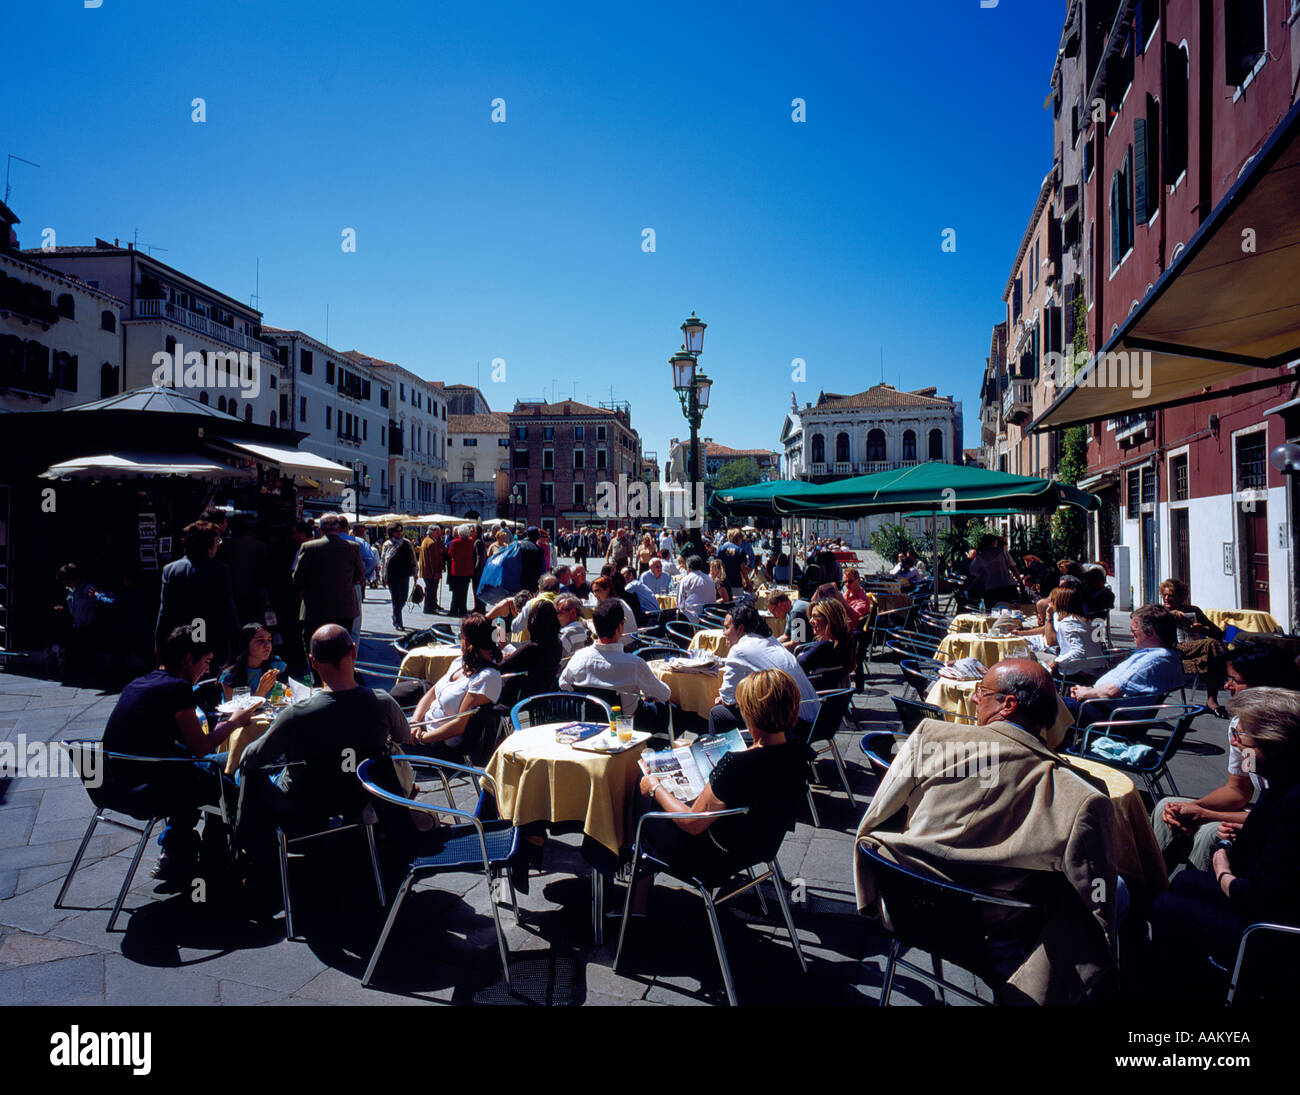 restaurant at Campo San Stefano, Venice, UNESCO World Heritage Site, Italy,  Europe. Photo by Willy Matheisl Stock Photo